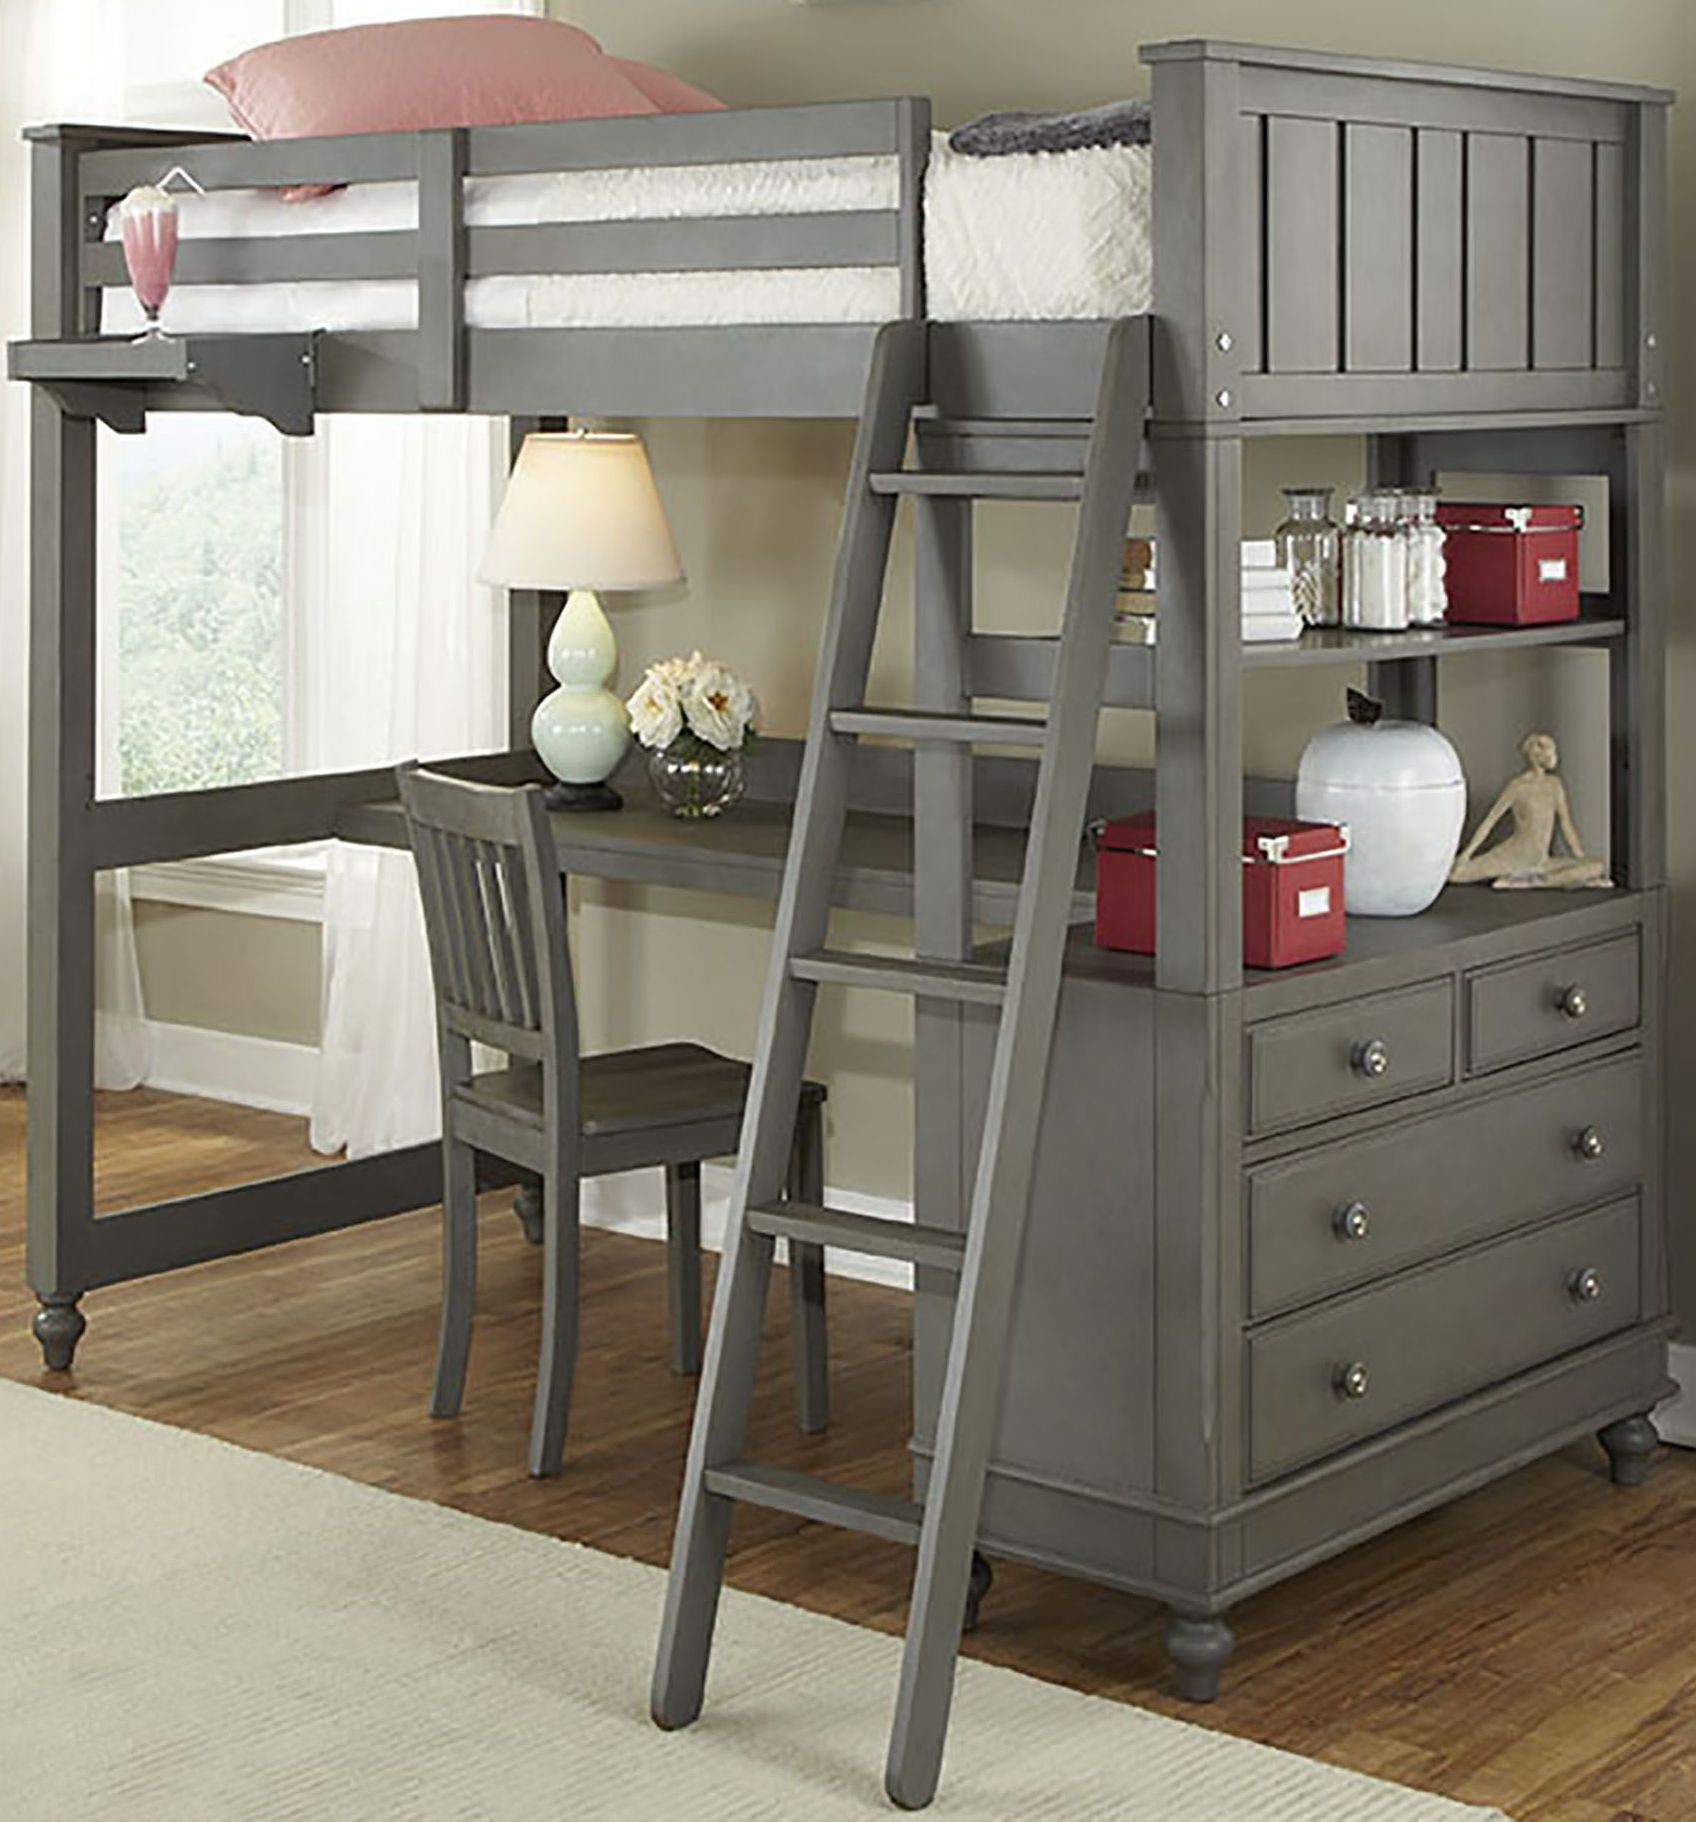 Lake House Stone Twin Loft Bed with Desk from NE Kids